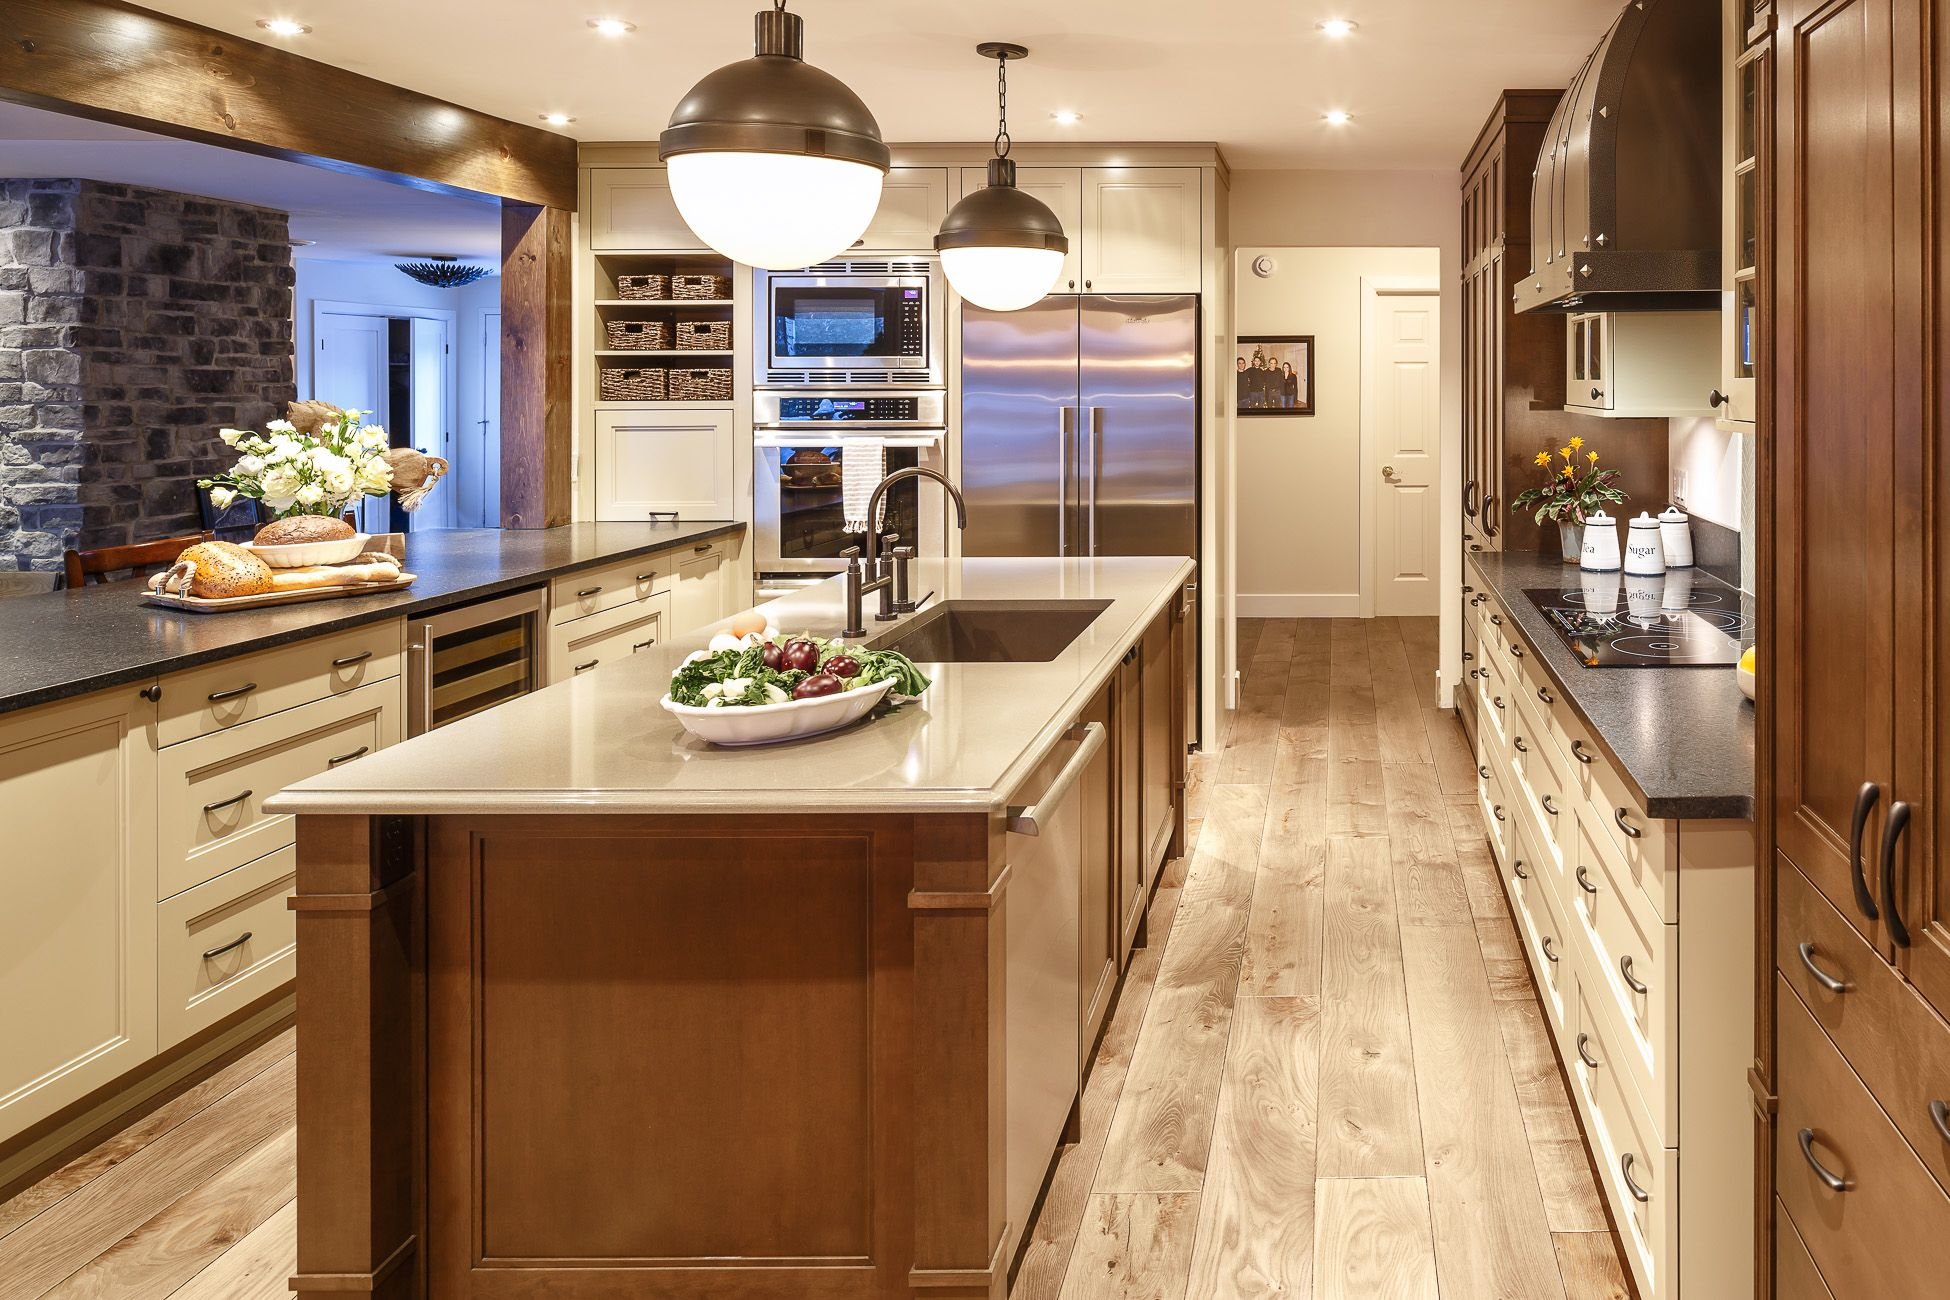 Amazing Cabinetry Contrast In This Beautiful Traditional Kitchen Amazing Kitchen Designer Ottawa Decorating Inspiration